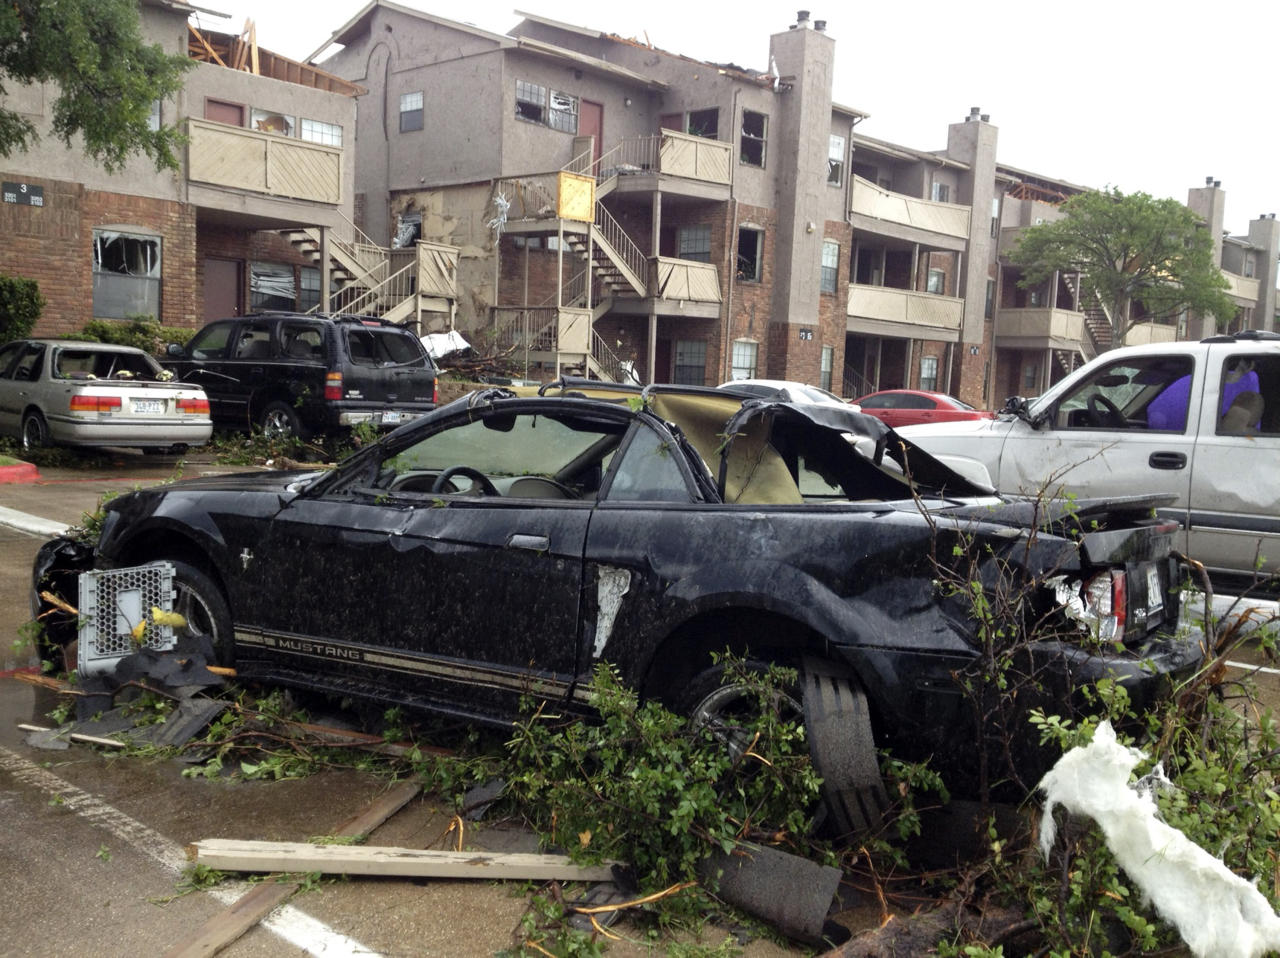 Cars and property at Portofino Apartments at Pleasant Run in Lancaster, Texas are damaged after a storm passed through the area on Tuesday, April 3, 2012. Tornadoes tore through the Dallas area Tuesday, peeling roofs off homes, tossing big-rig trucks into the air and leaving flattened tractor trailers strewn along highways and parking lots. (AP Photo/The Fort Worth Star-Telegram, Ron Ennis) MAGS OUT